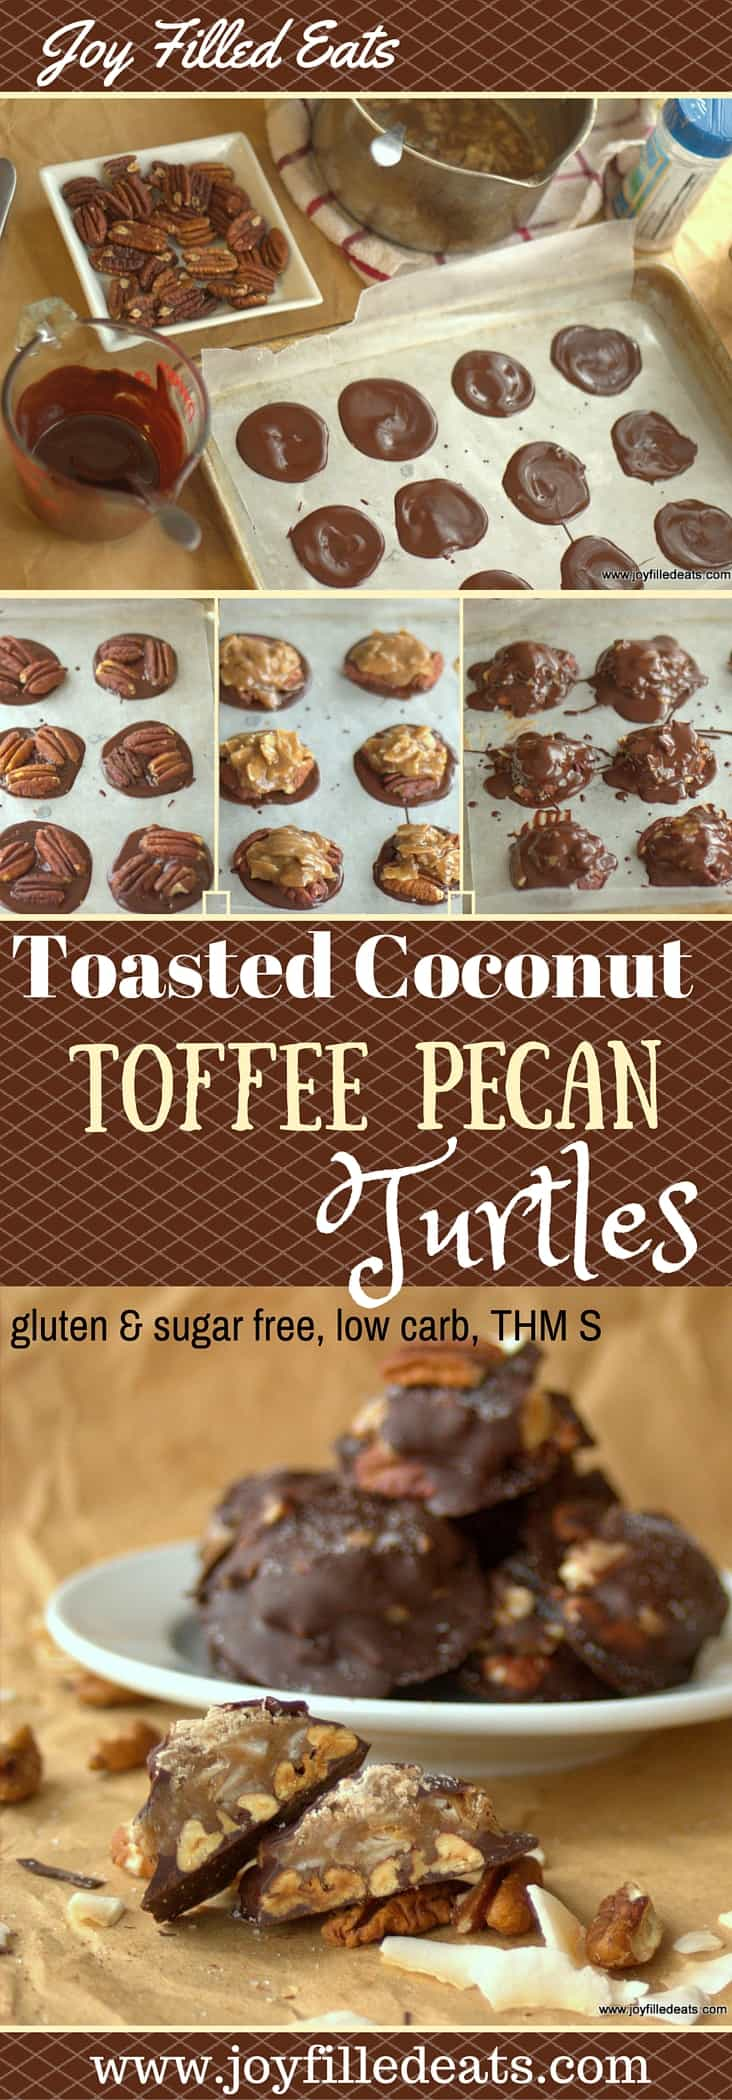 Chocolate + Toffee + Toasted Pecans AND Coconut? Yes. Please. These Turtles are amazing. And sugar free, gluten free, low carb, and THM S approved.